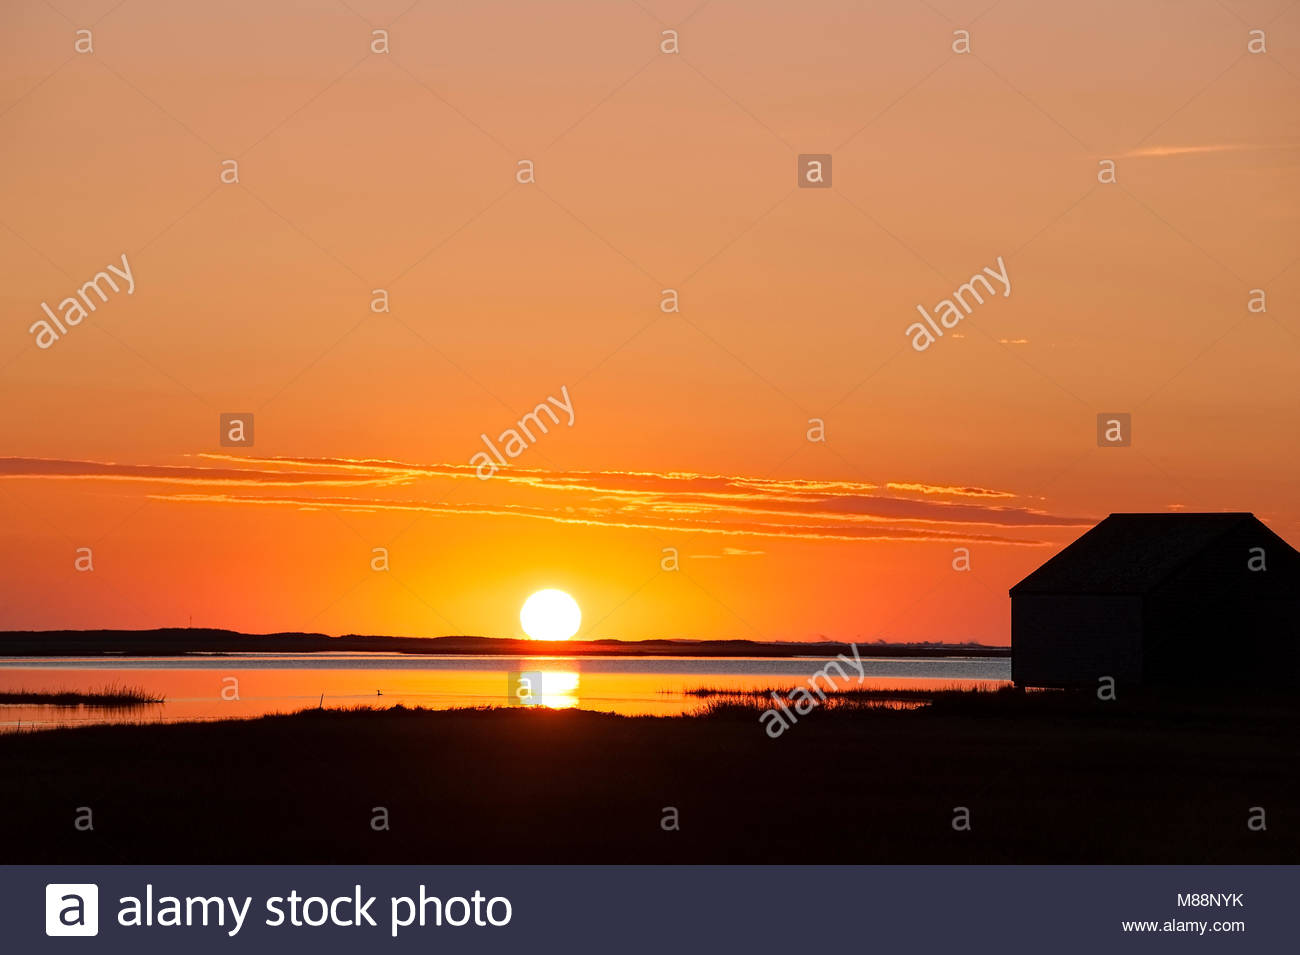 Sunrise Over Salt Pond With Boathouse Silhouette, Eastham, Cape